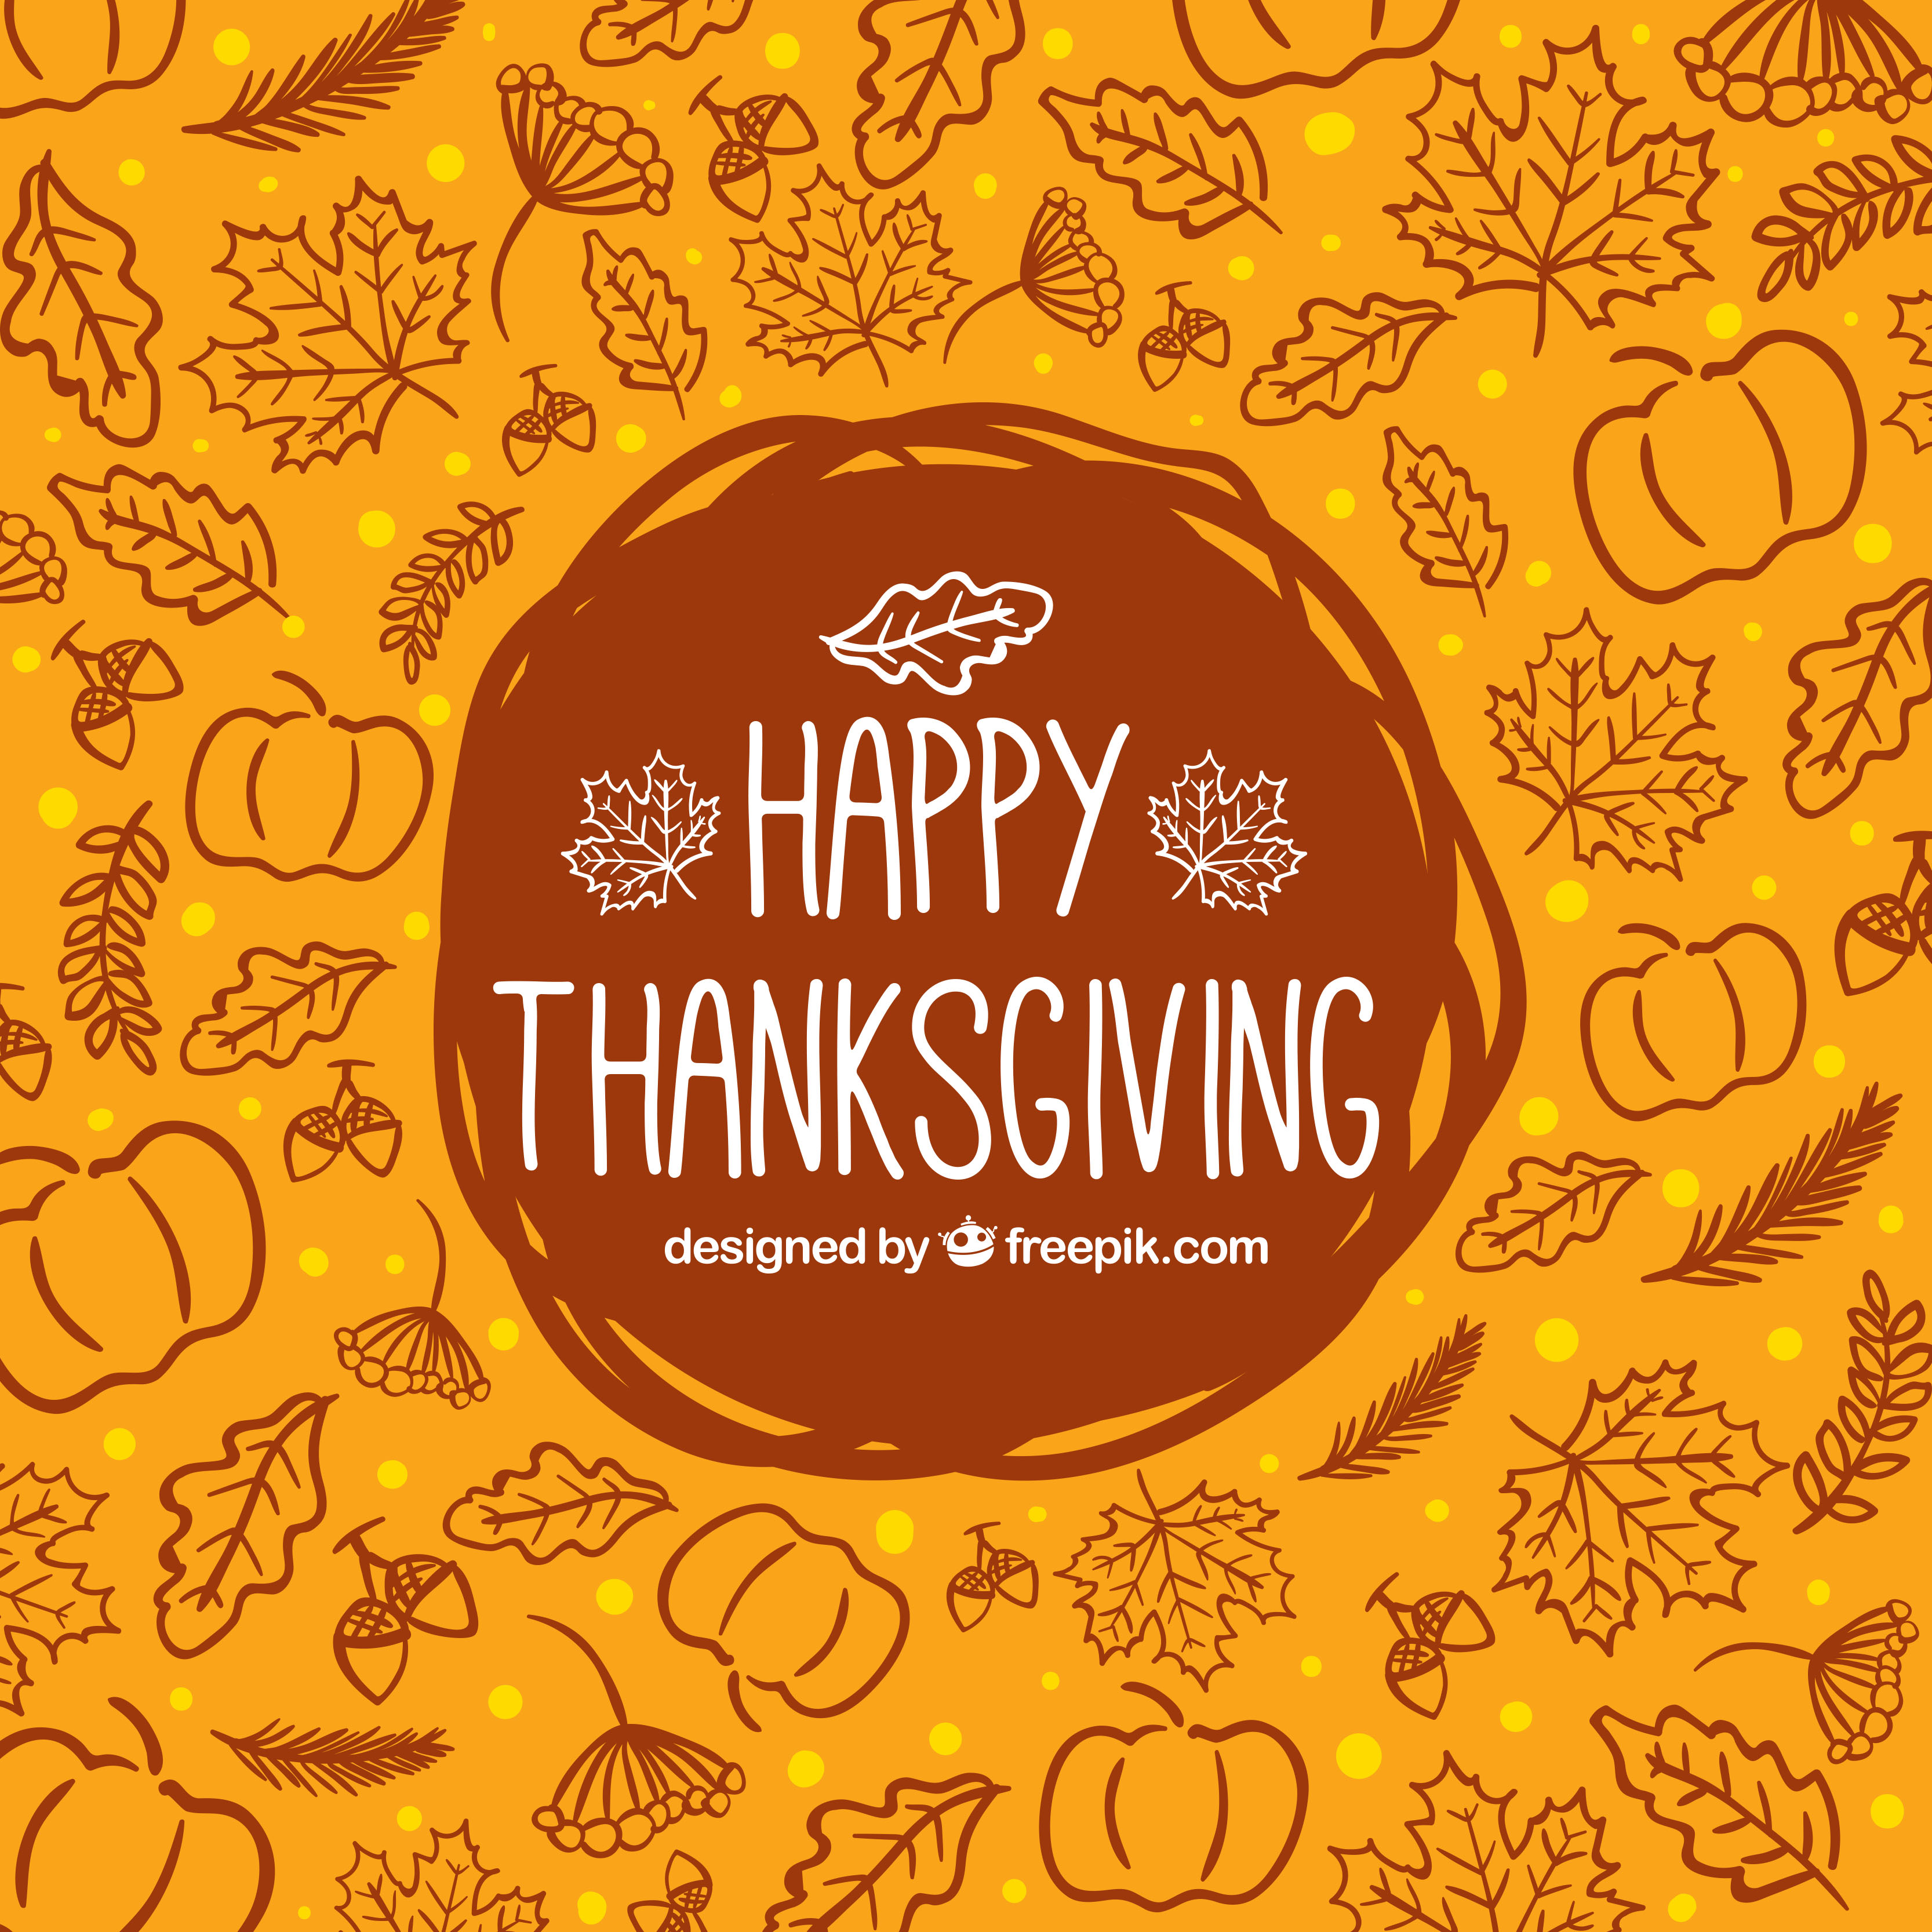 Imagery Quotes In The Yellow Wallpaper 23 Free Thanksgiving Flyers Psd Word Templates Demplates